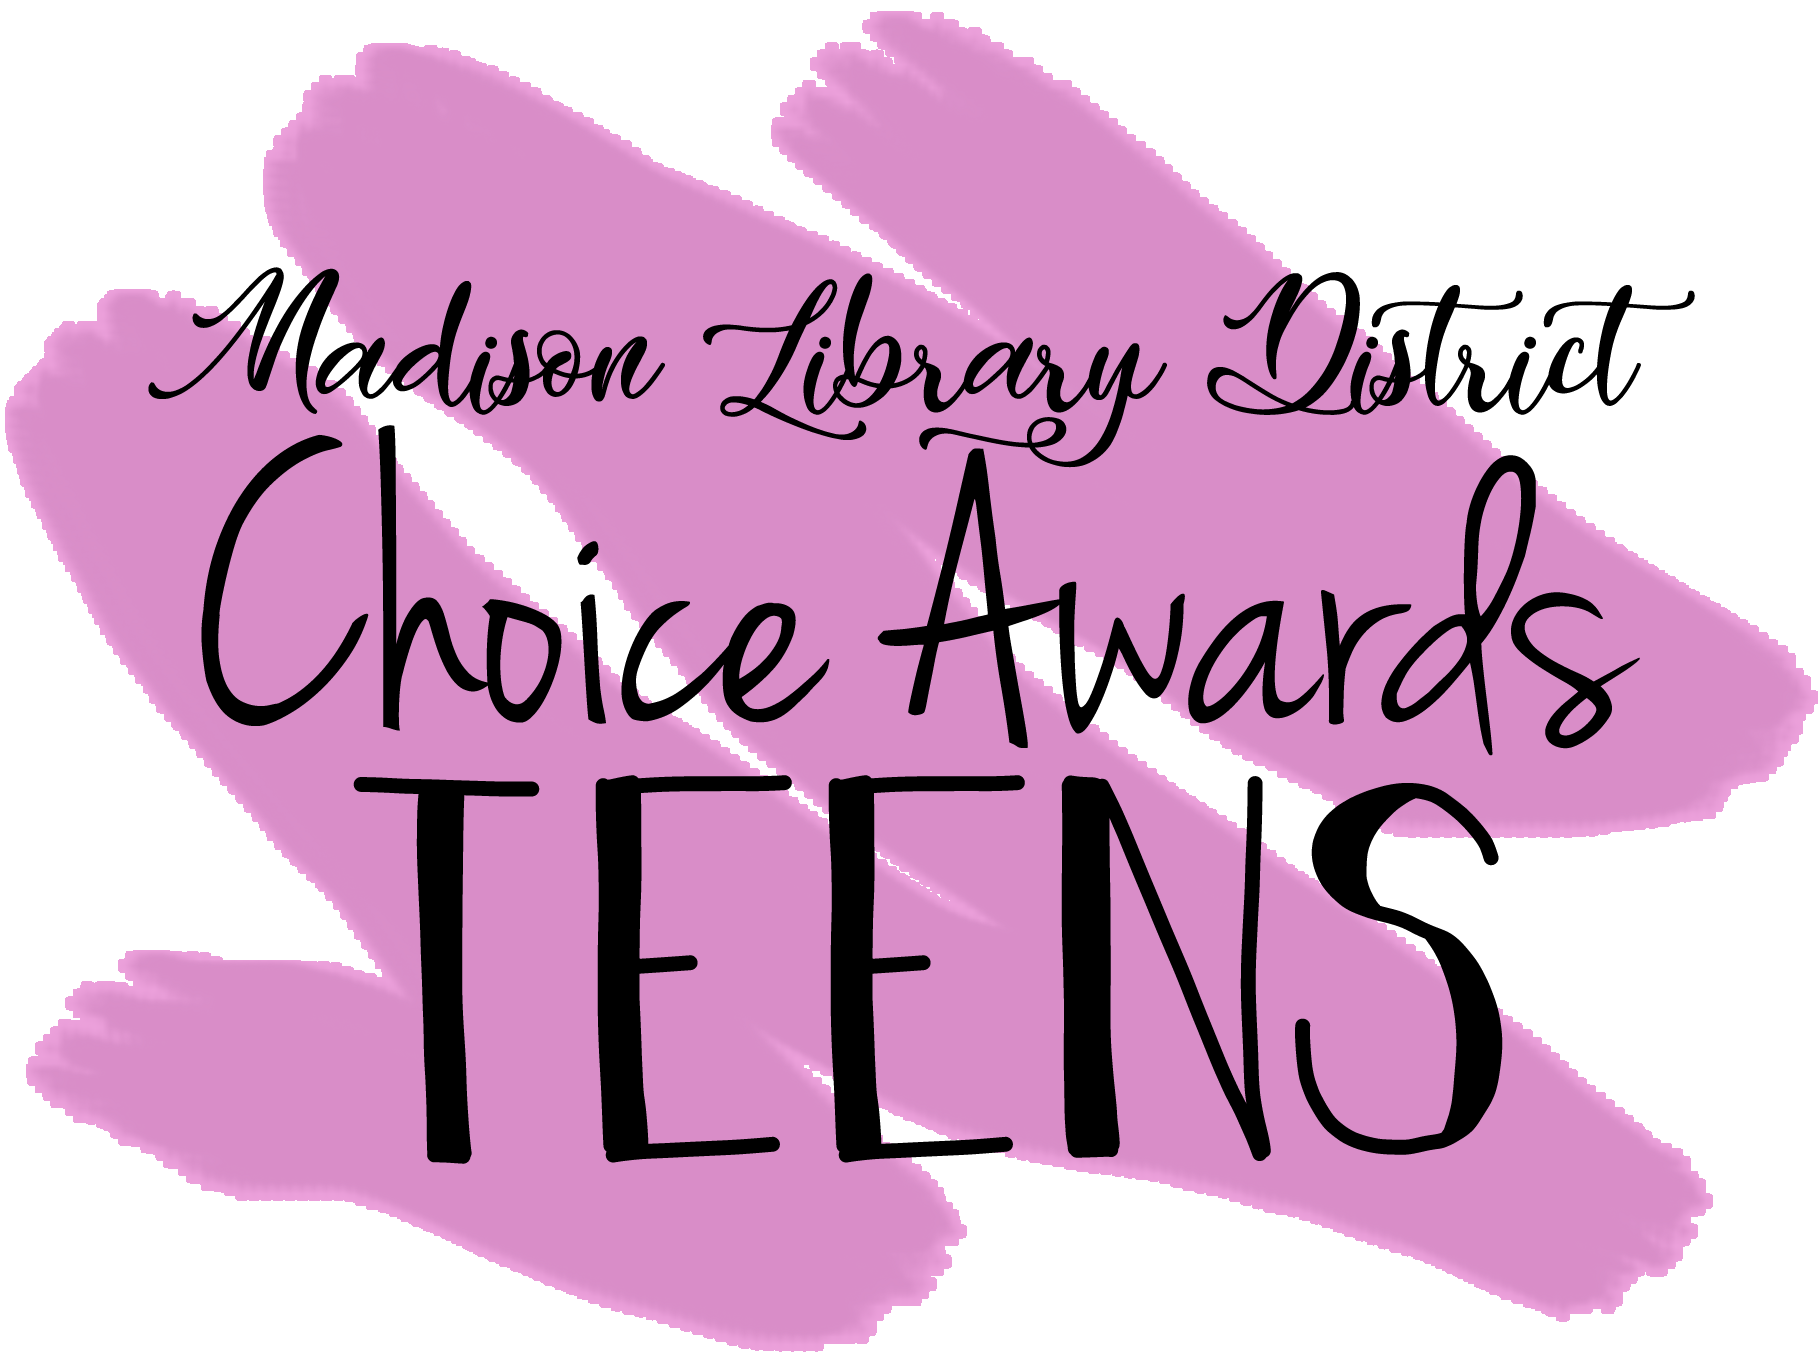 MLD Choice Fiction Nominees 2018